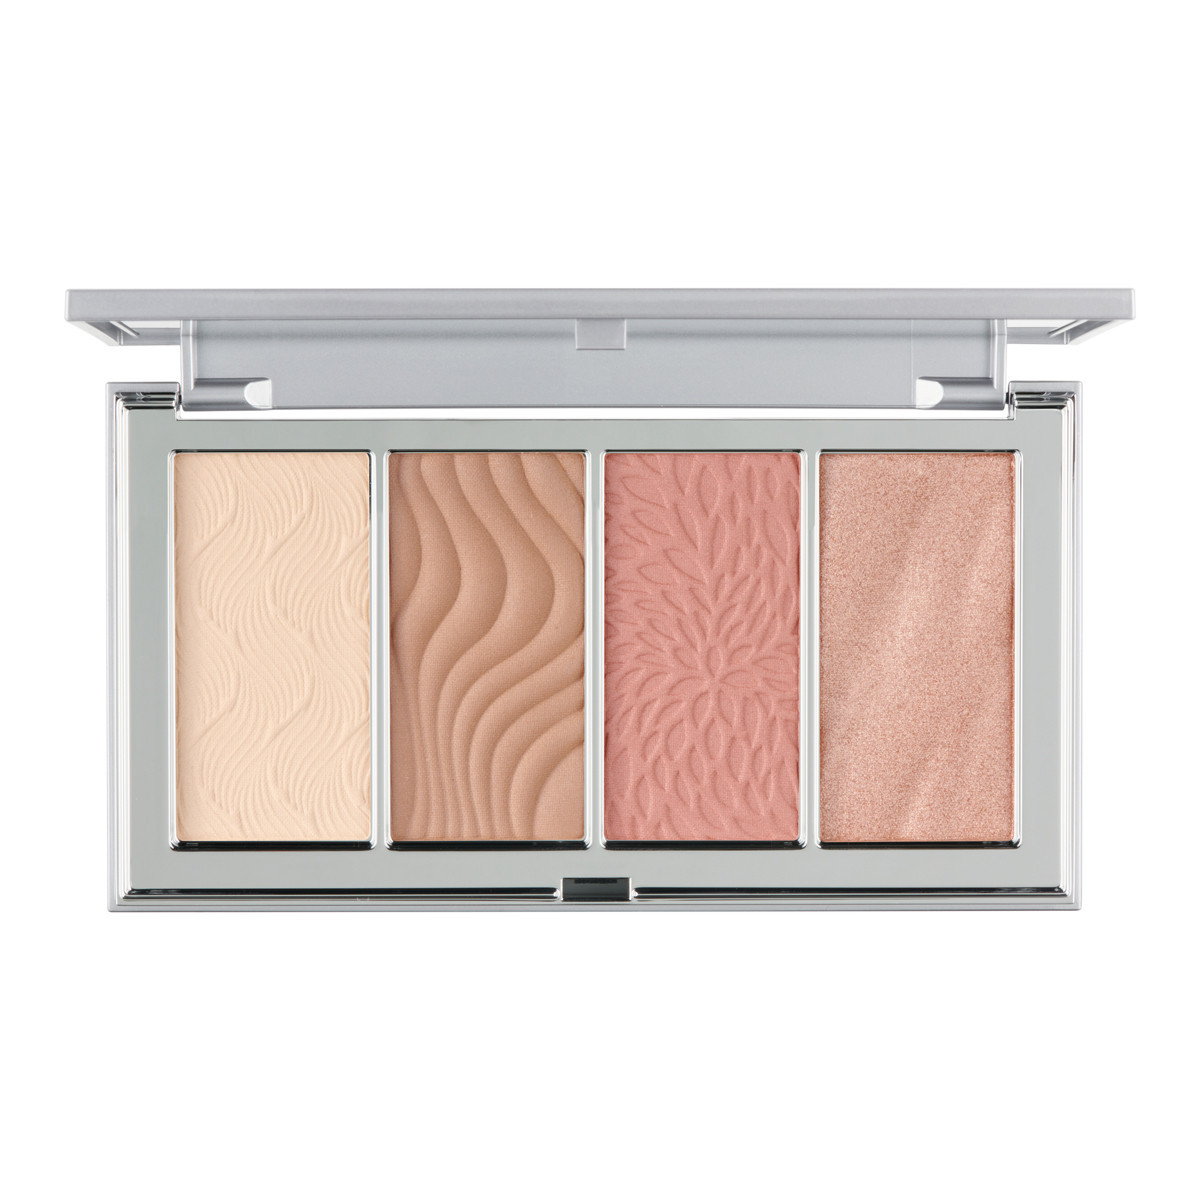 4-in-1 Skin Perfecting Powders Face Palette in Fair-Light